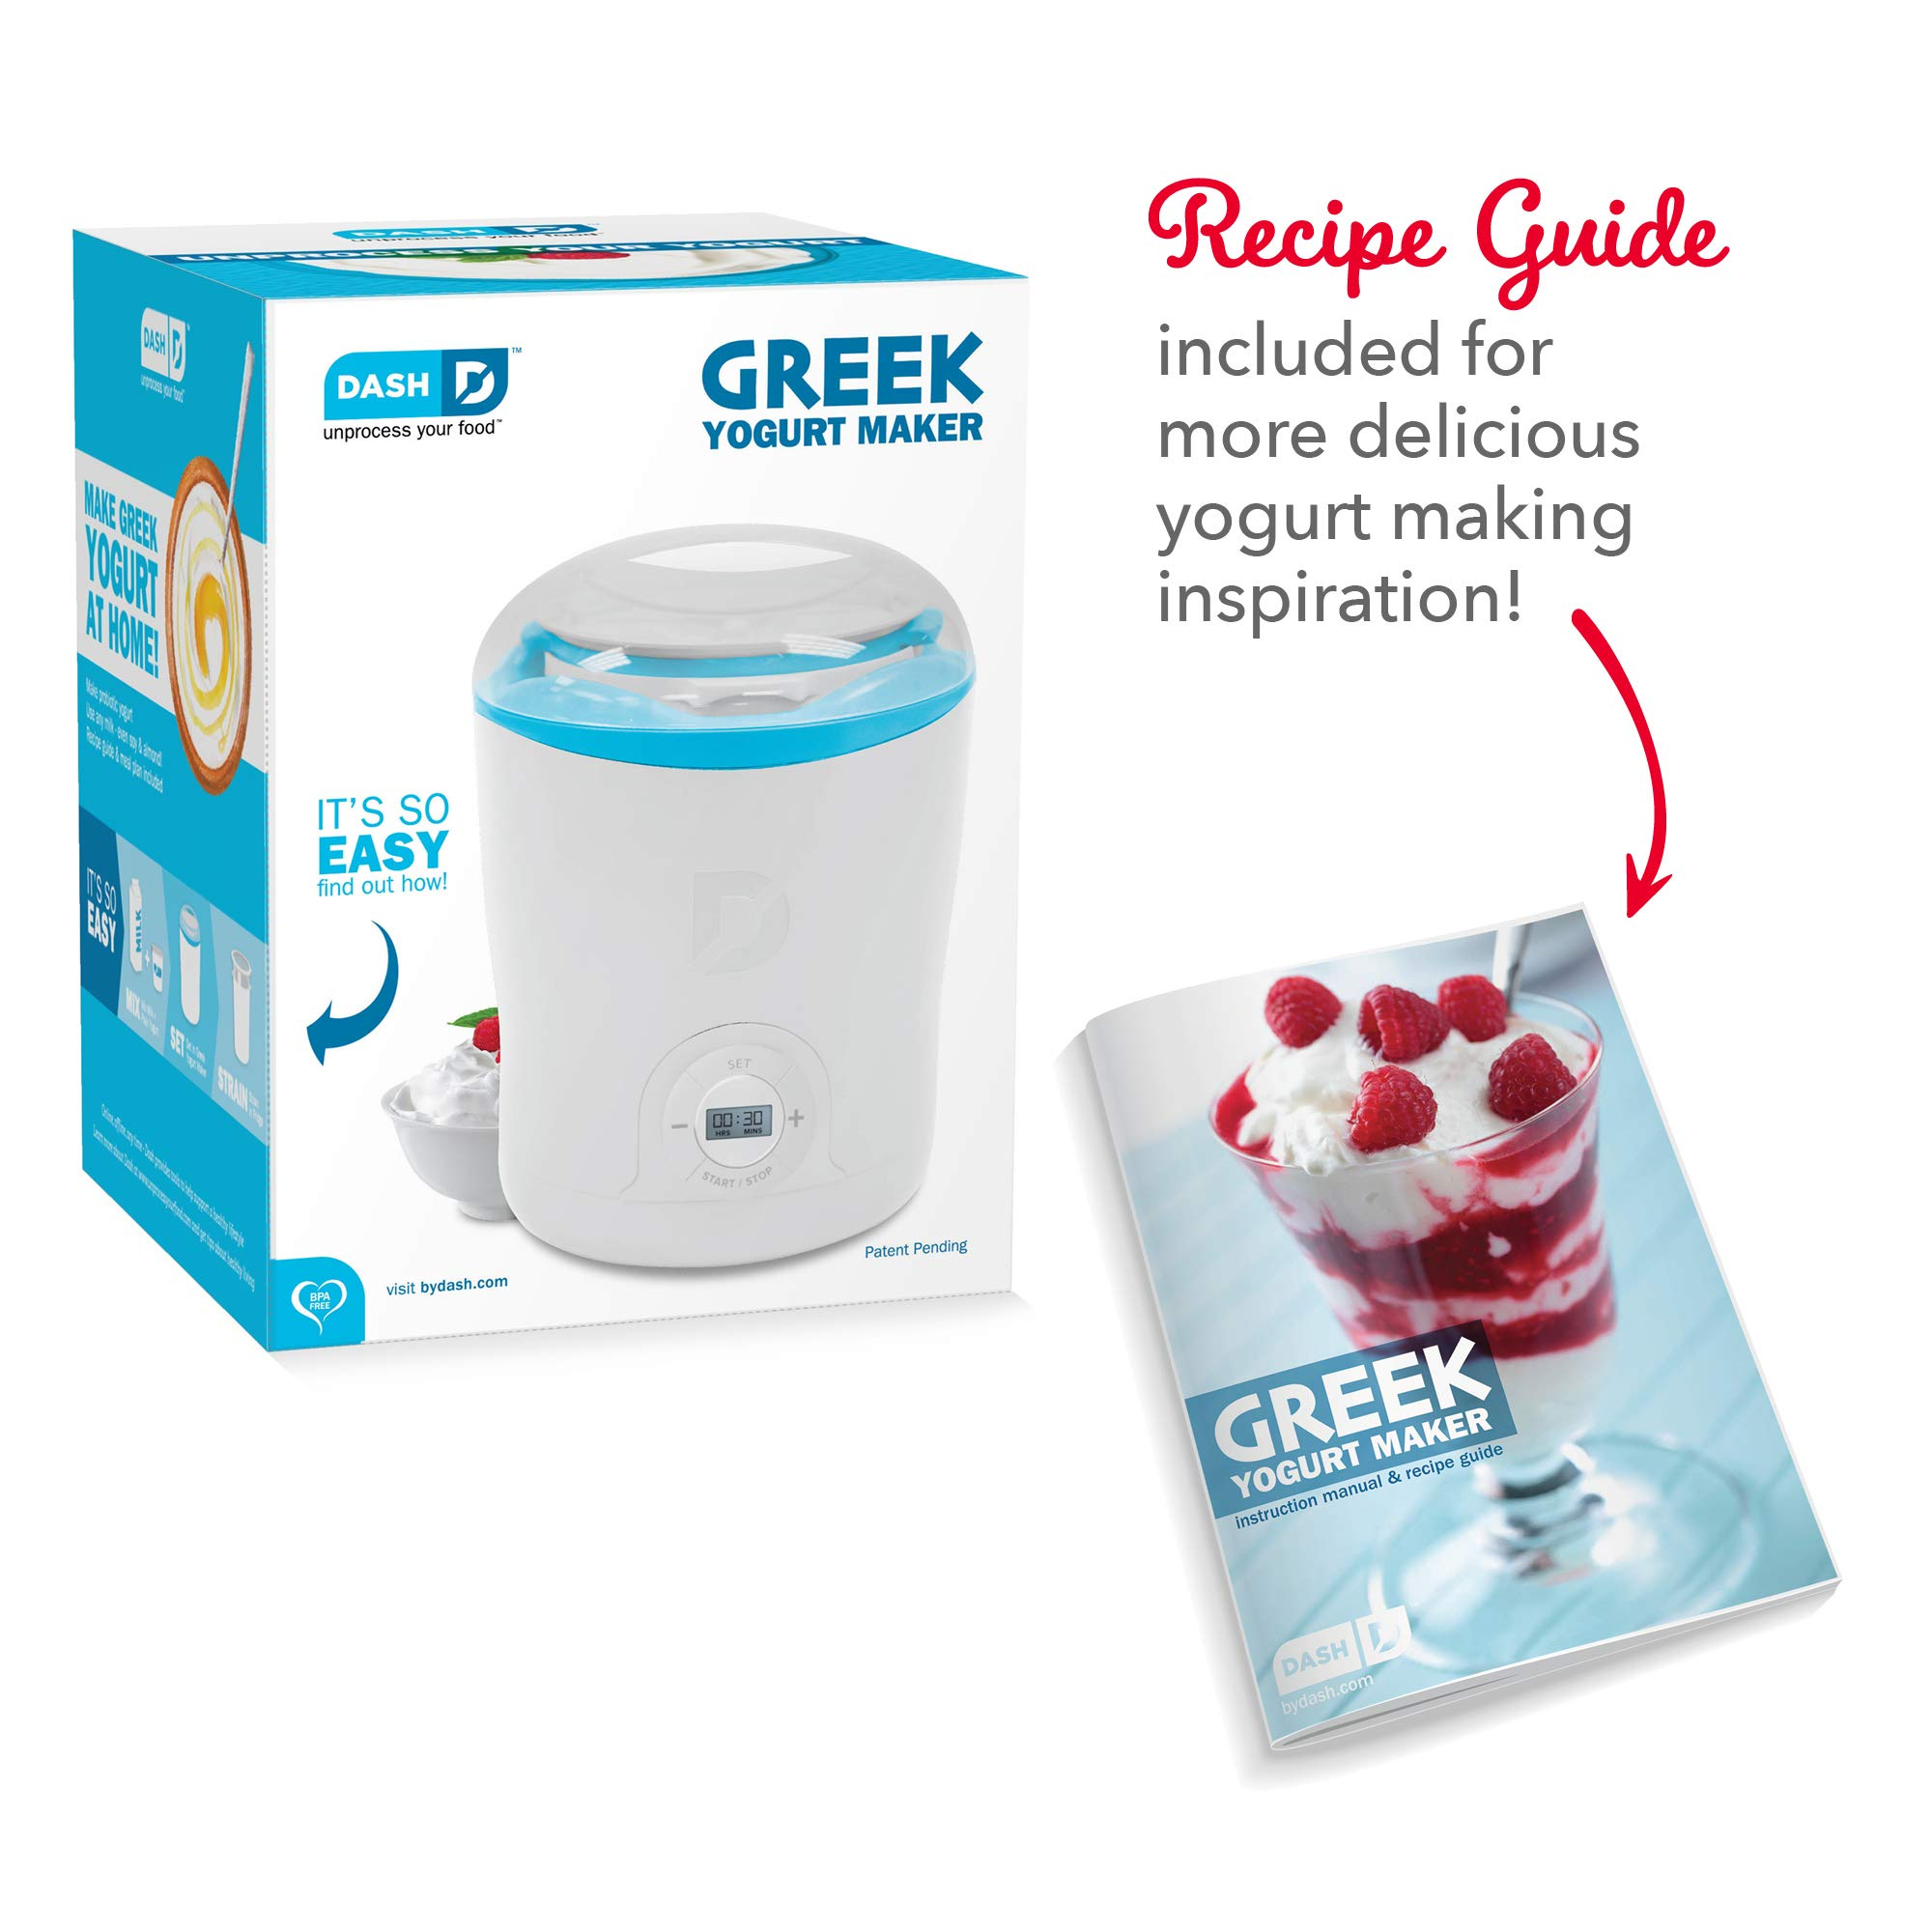 Parfaits Kids White 2 BPA Storage Containers with Lids: Perfect for Organic Flavored Dash DGY001WBU Greek Yogurt Maker Machine with LCD Display or Sugar Free Options for Baby Sweetened Plain